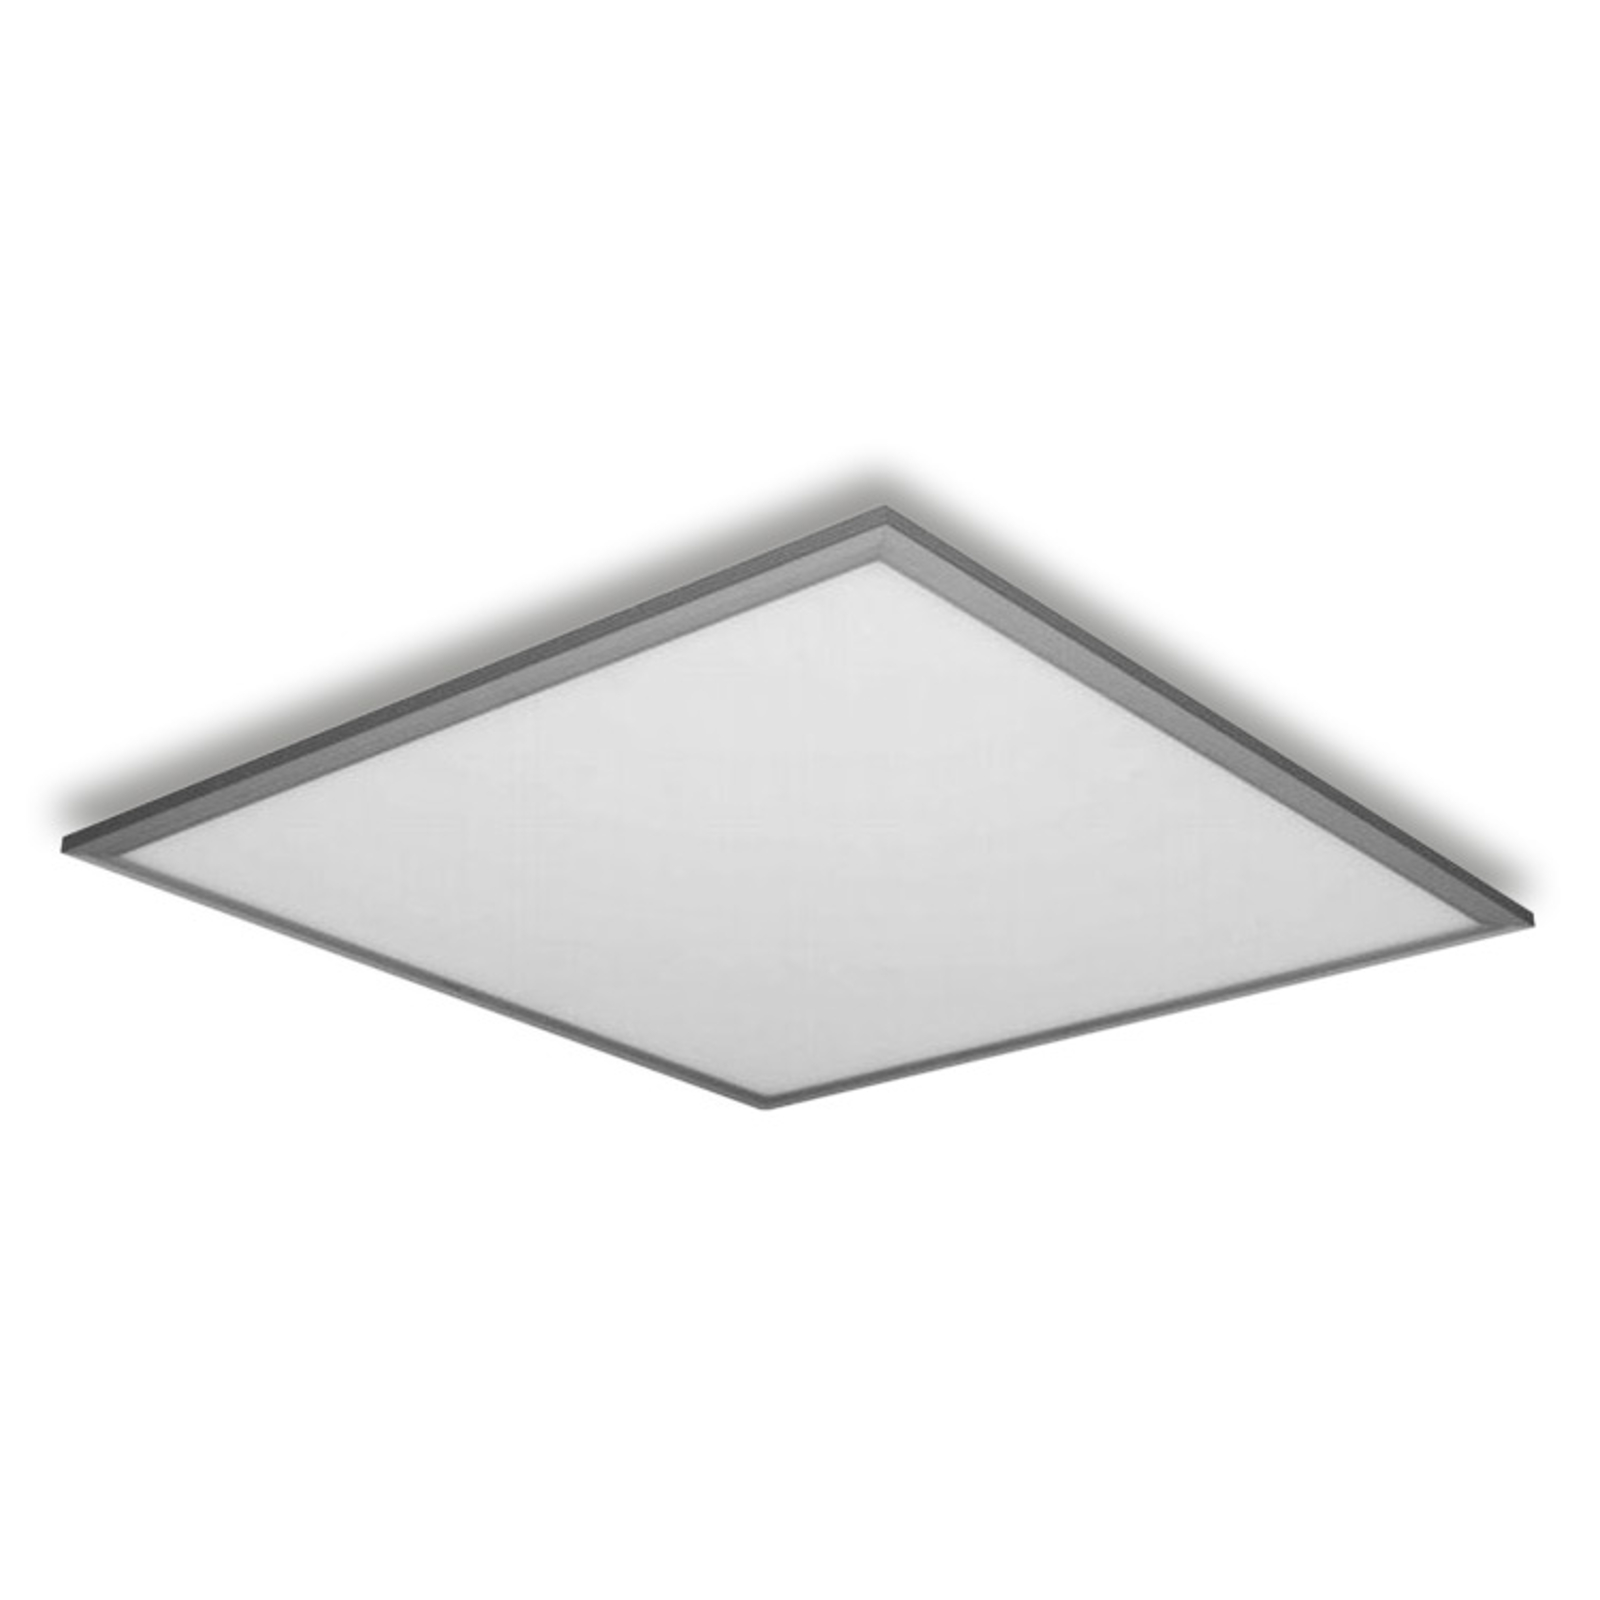 LED All-in-One Panel Edge, DALI